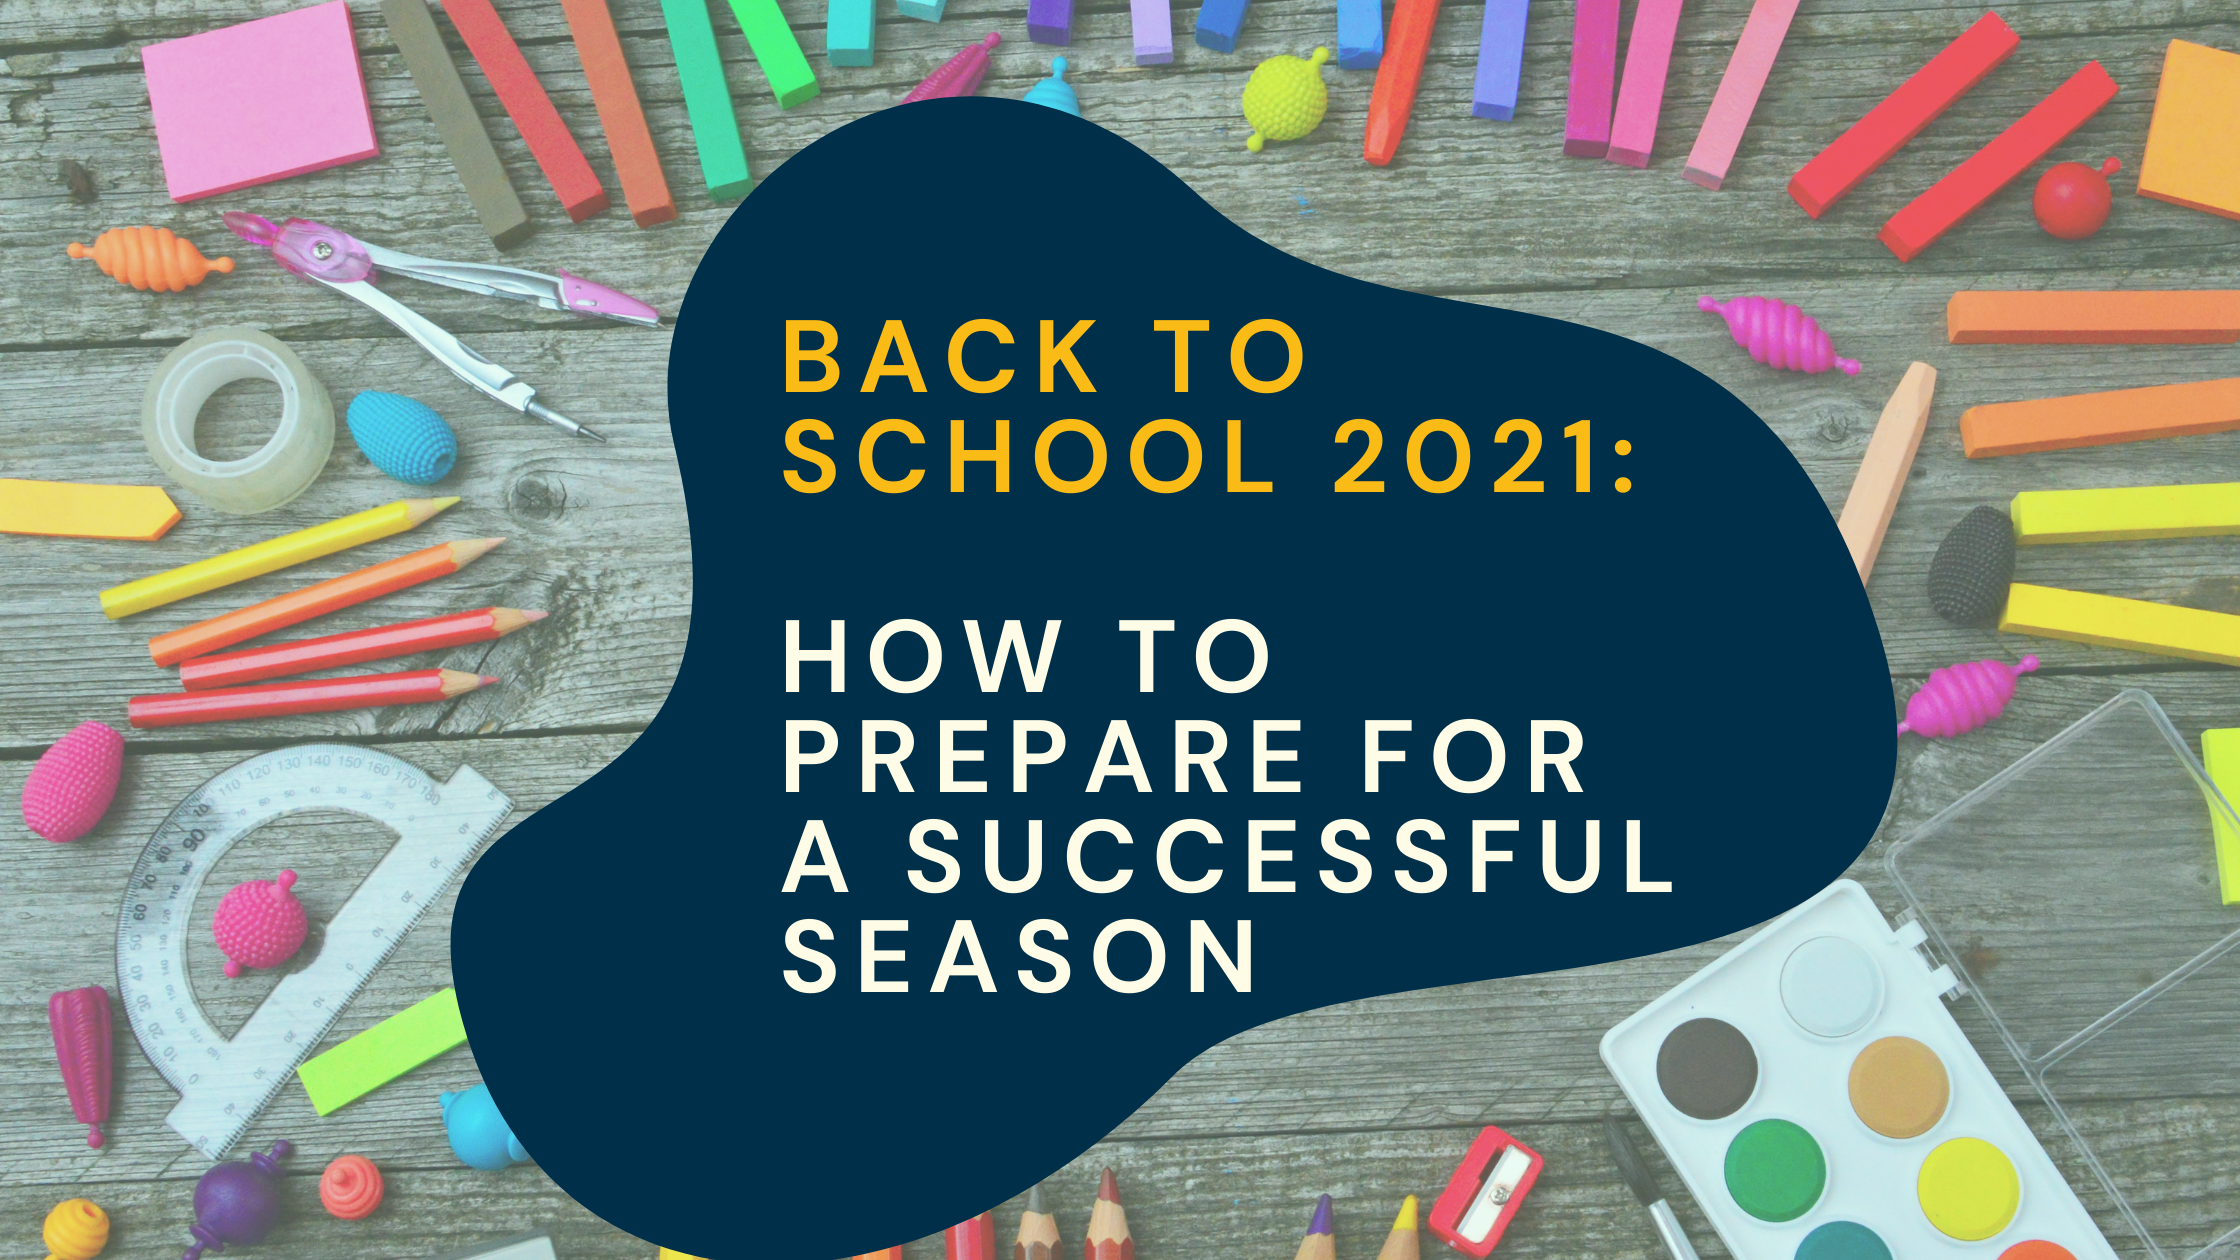 back-to-school 2021: how to prepare for a successful retail season